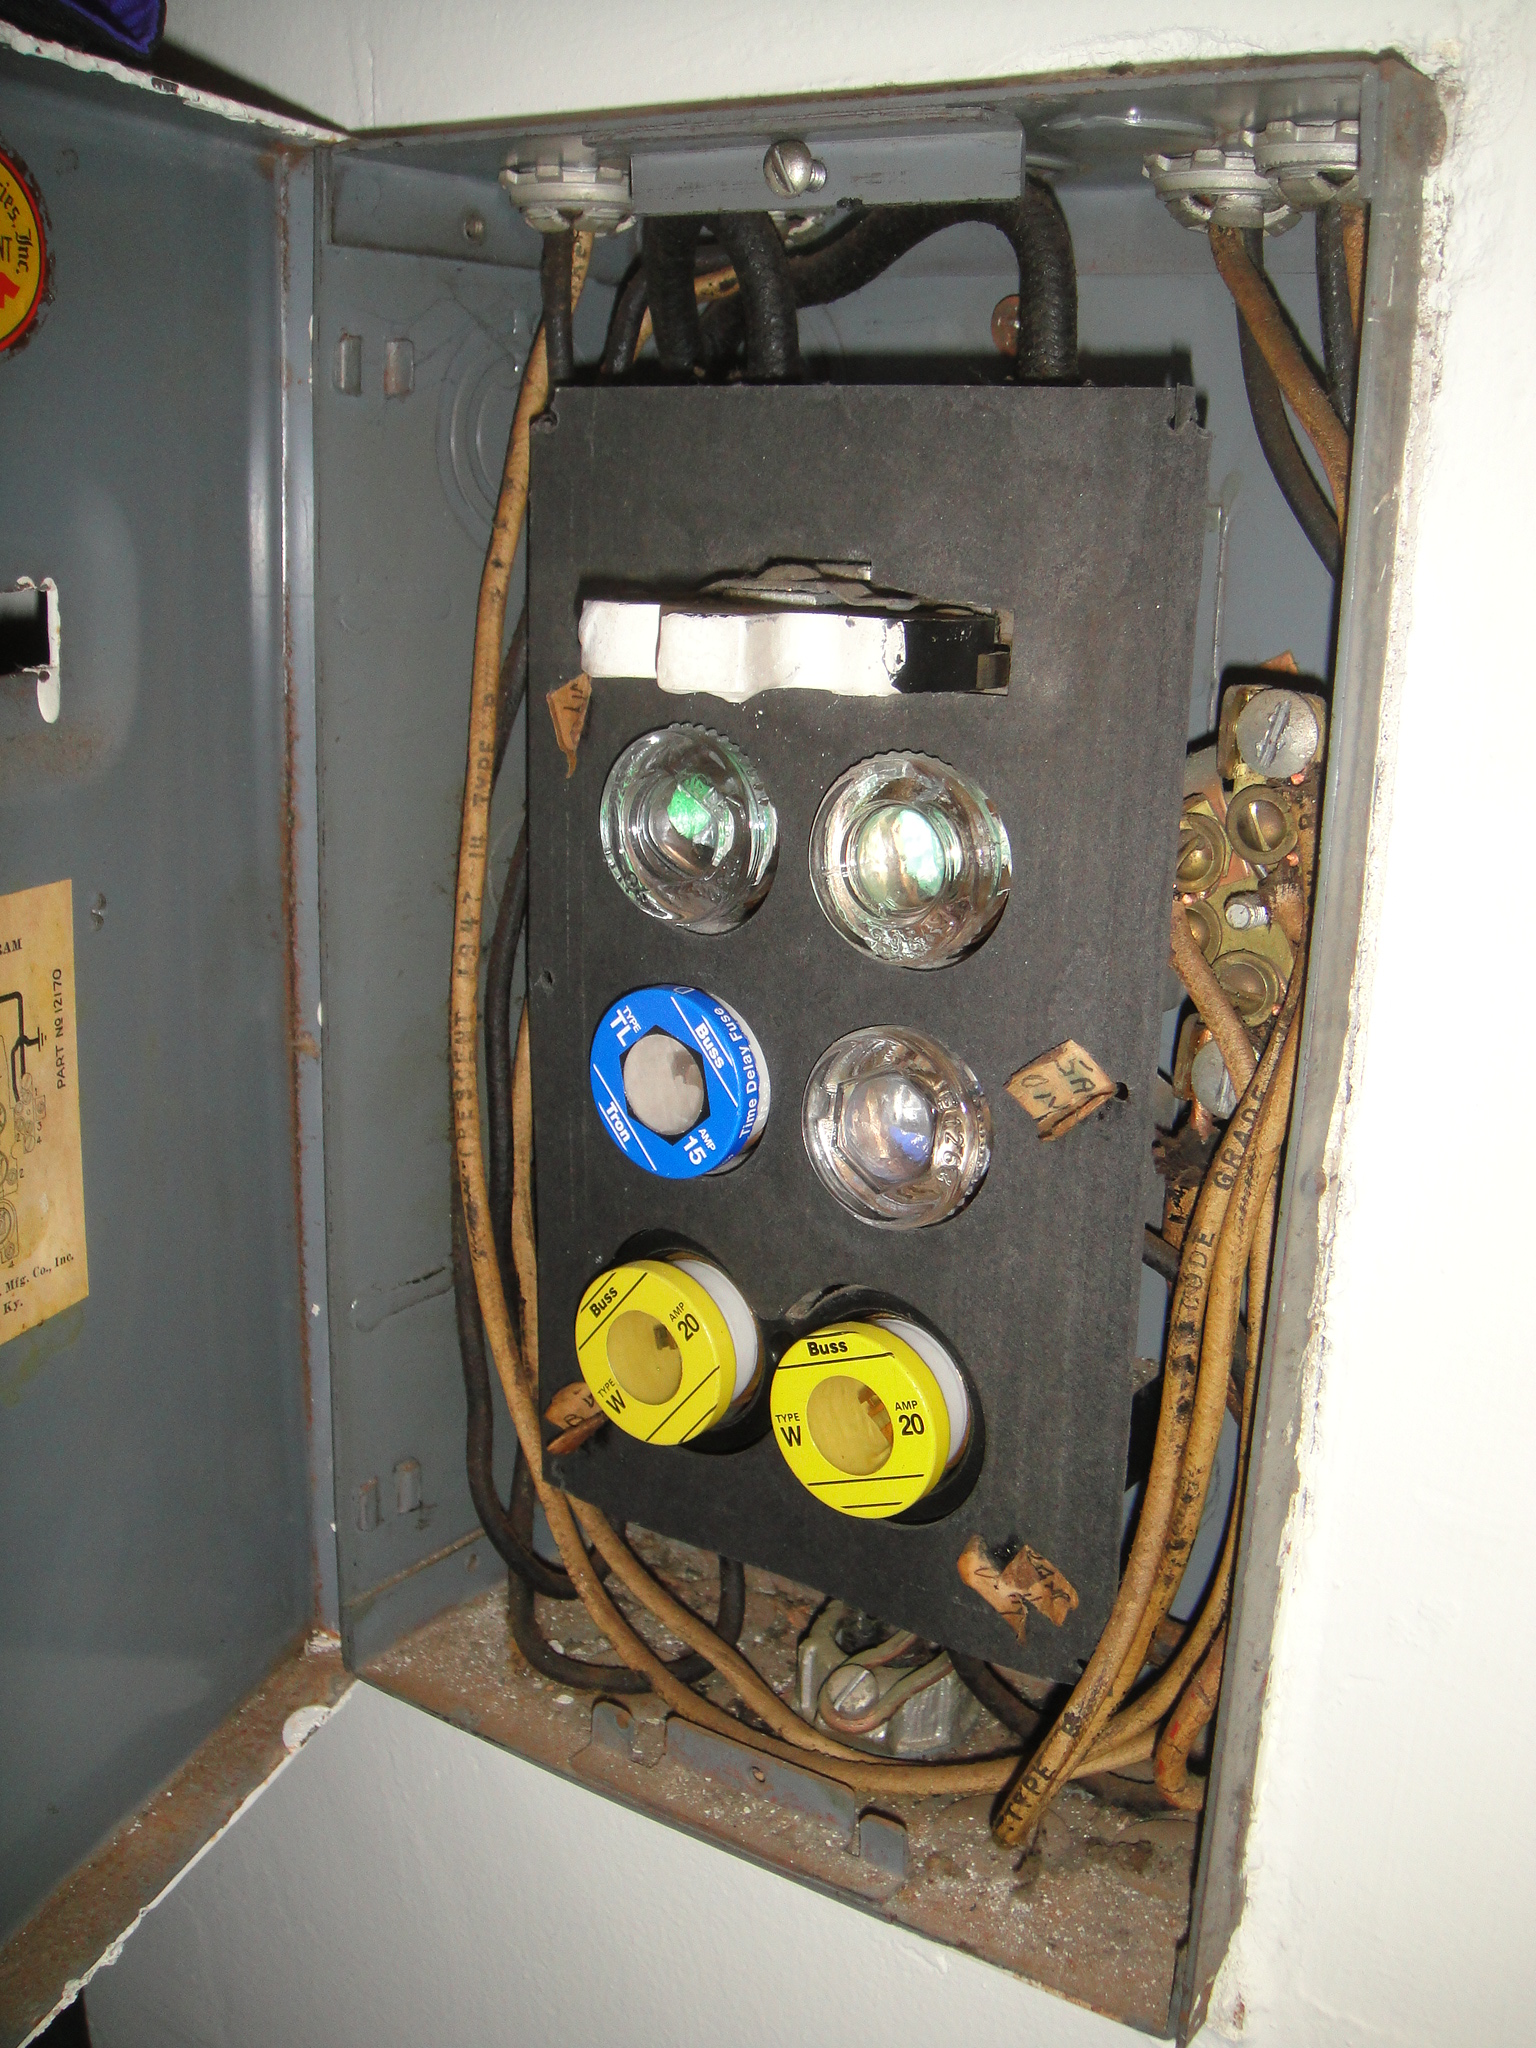 fuse boxes from the 1950